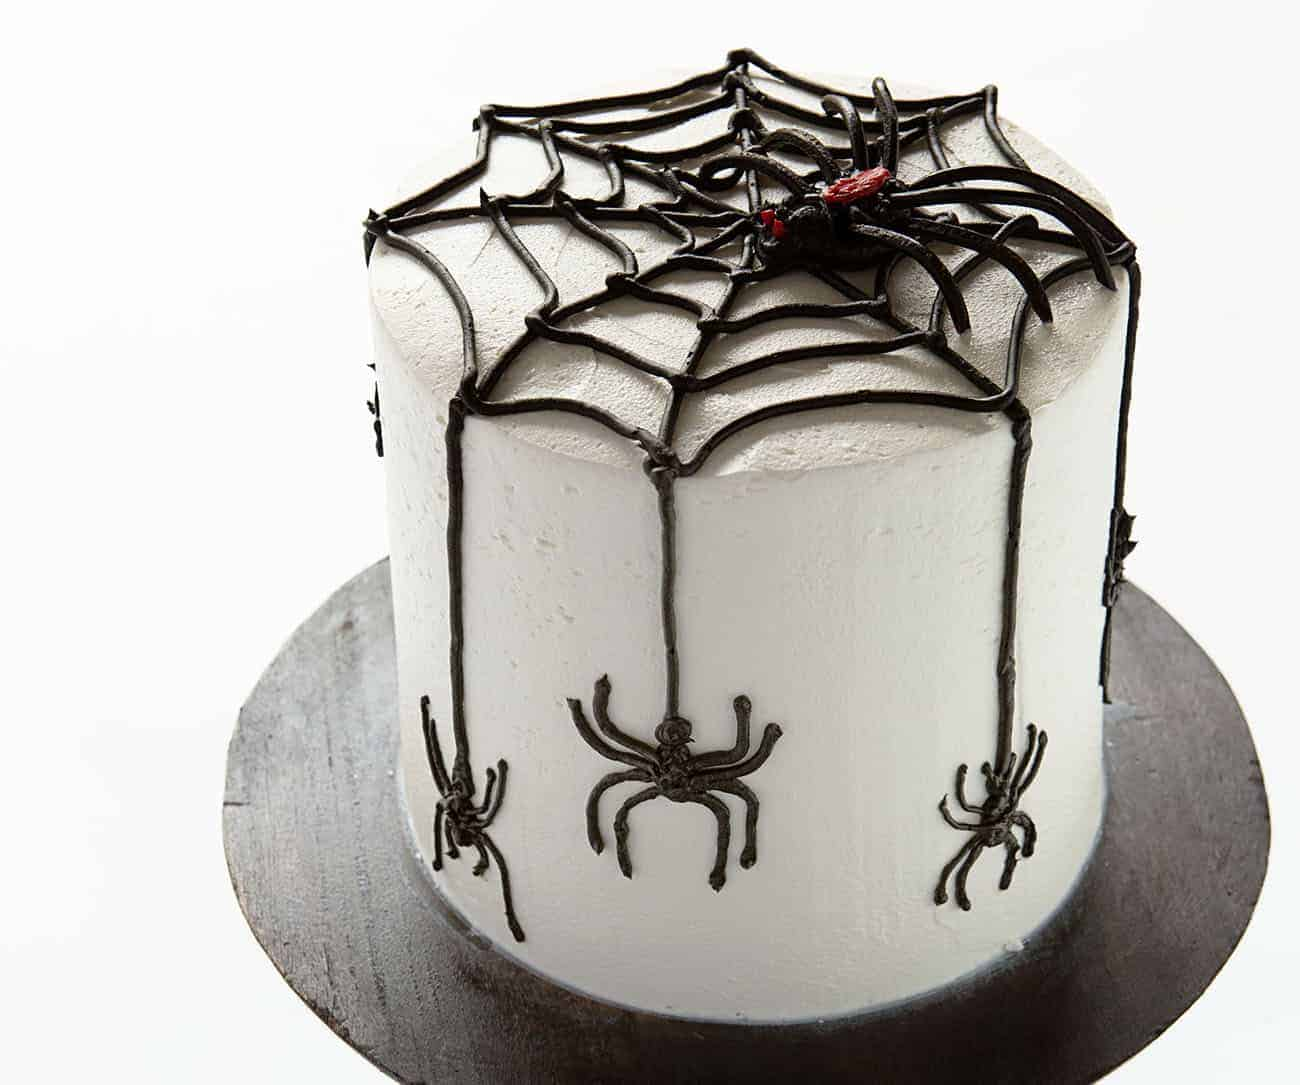 Spider Cake on cake stand